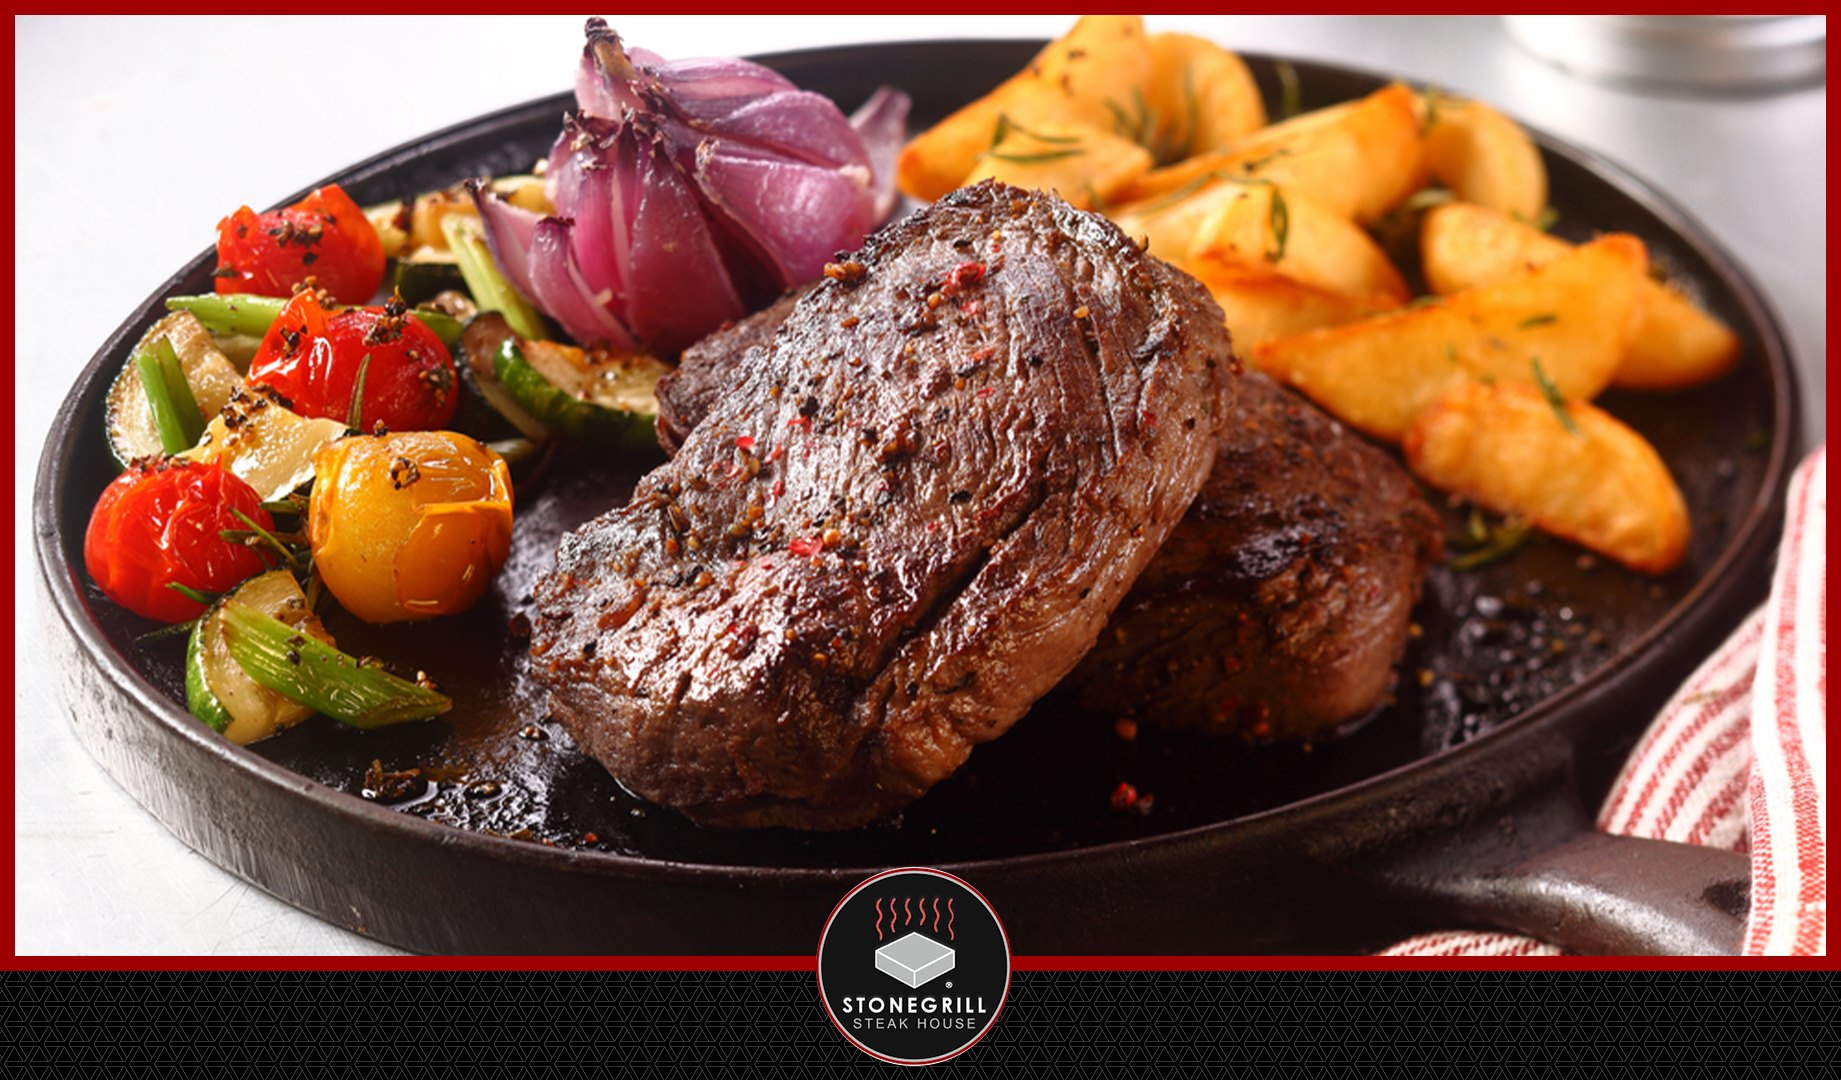 Stone Grill Steakhouse